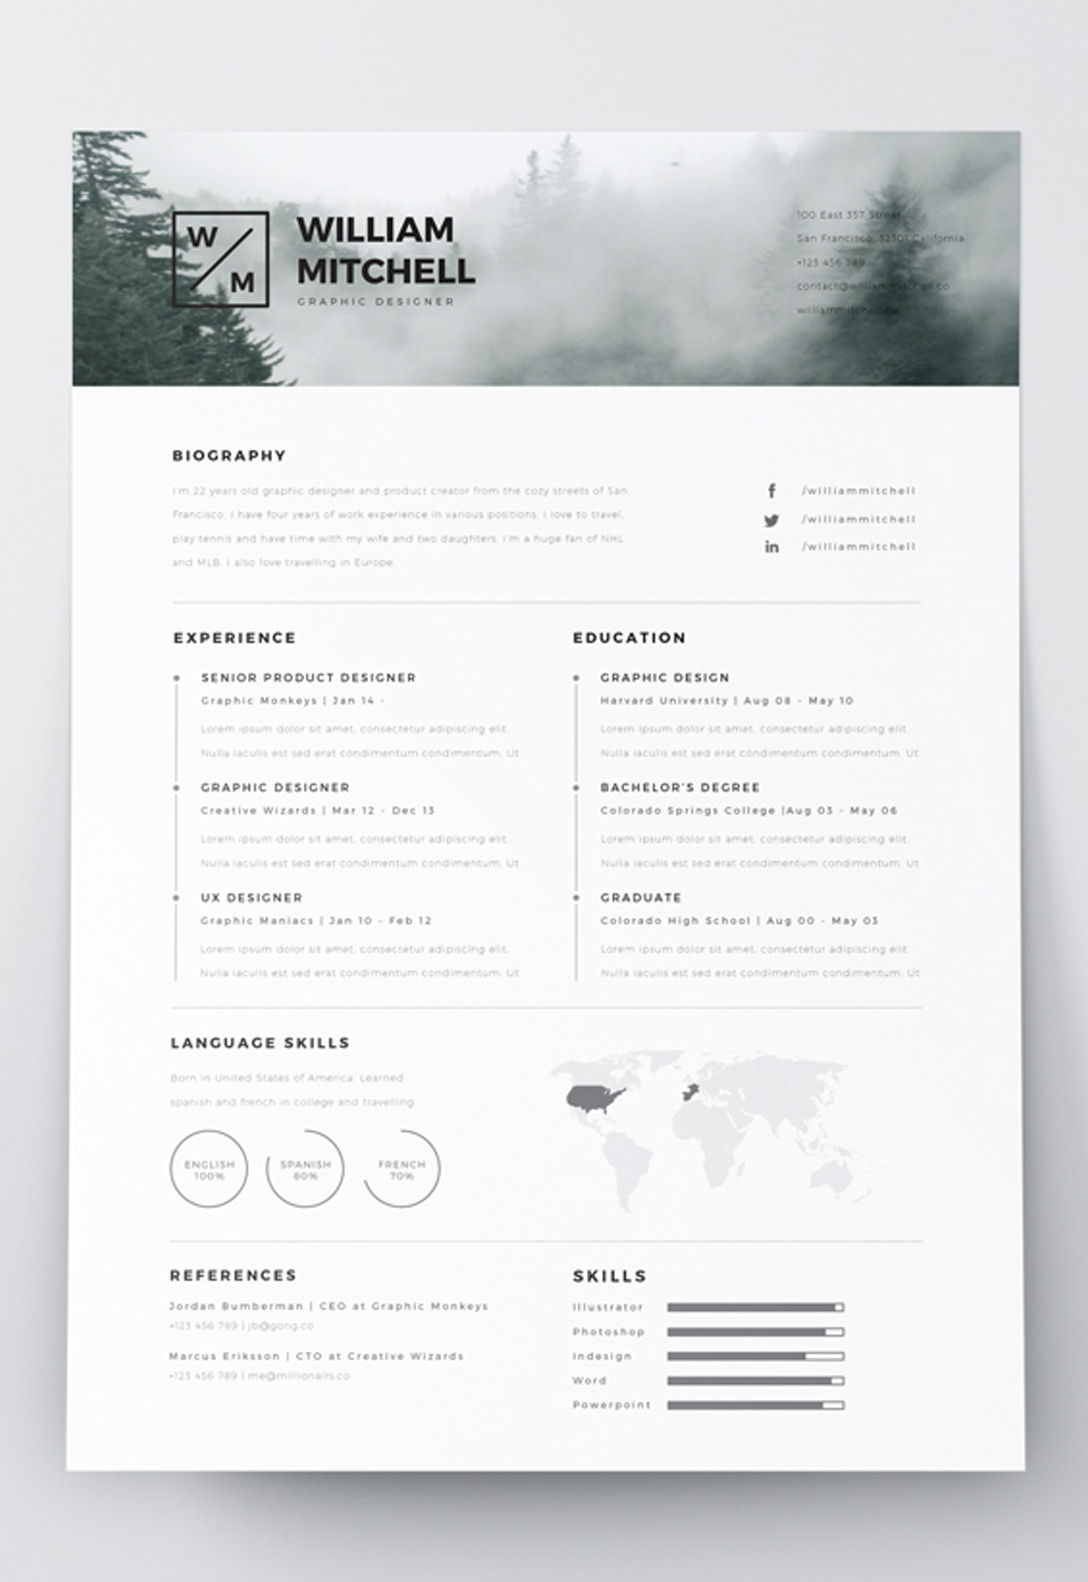 elegant adobe resume template cv templates adobe illustrator free resume examples cv. Black Bedroom Furniture Sets. Home Design Ideas